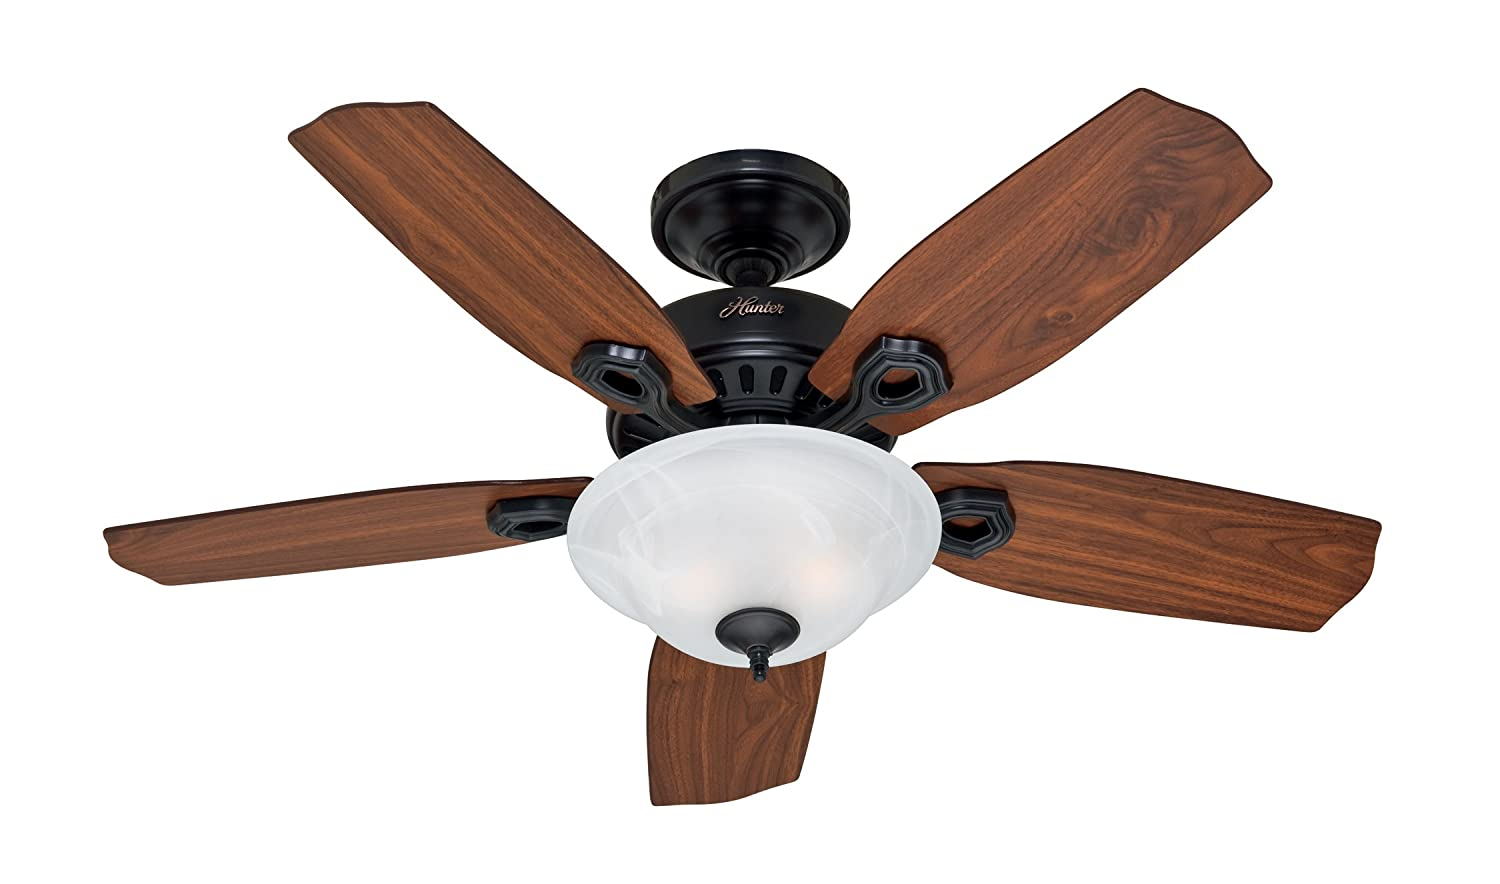 Hunter 28707 Auberville 44 Inch Single Light 5 Blade Ceiling Fan Black With Walnut Cherry Blades And Swirled Marble Glass Bowl Com